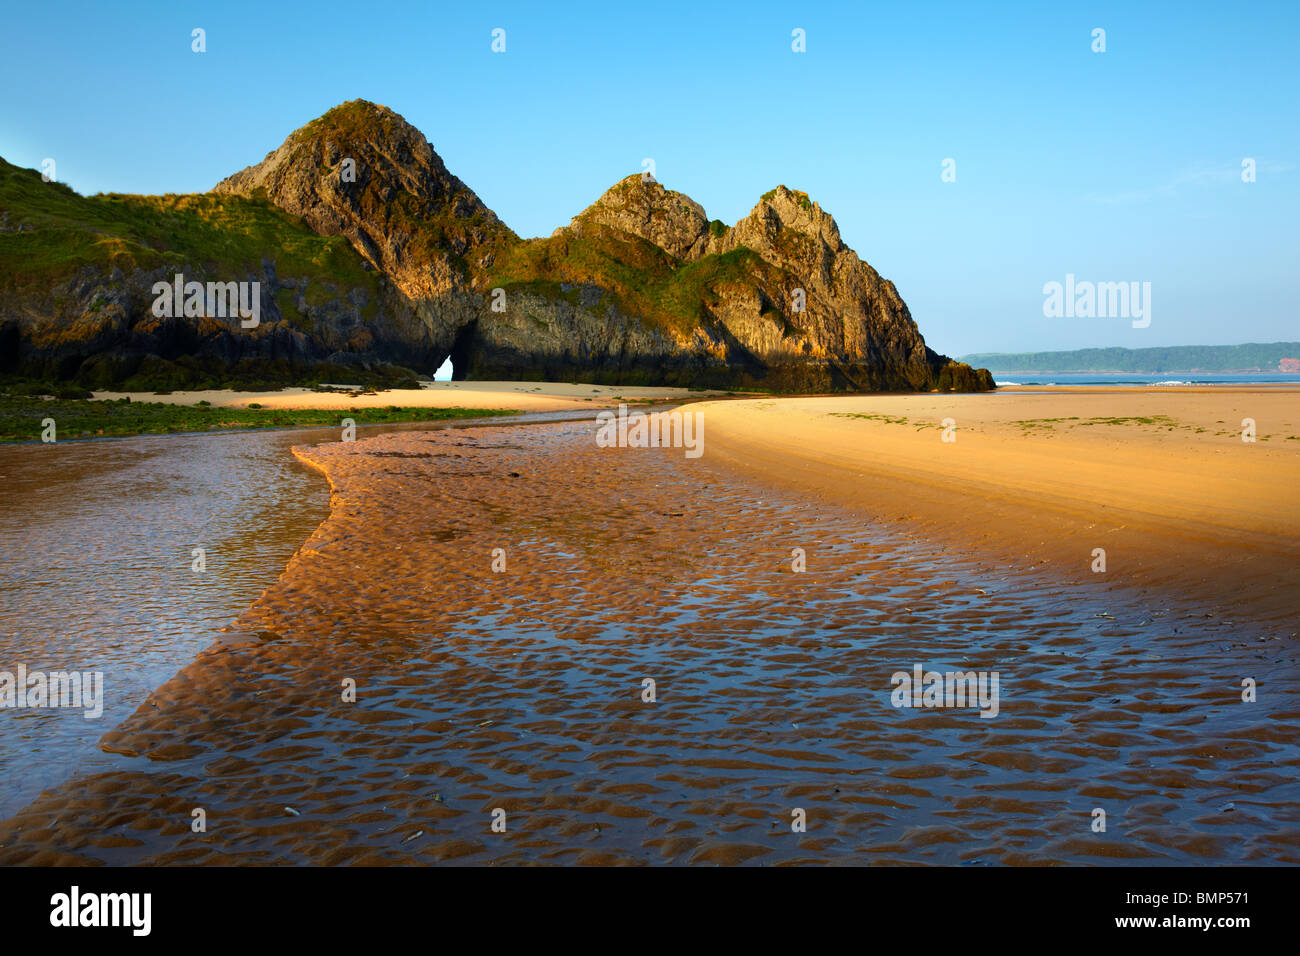 Three Cliffs Bay, Gower peninsula, South West Wales, dawn. - Stock Image